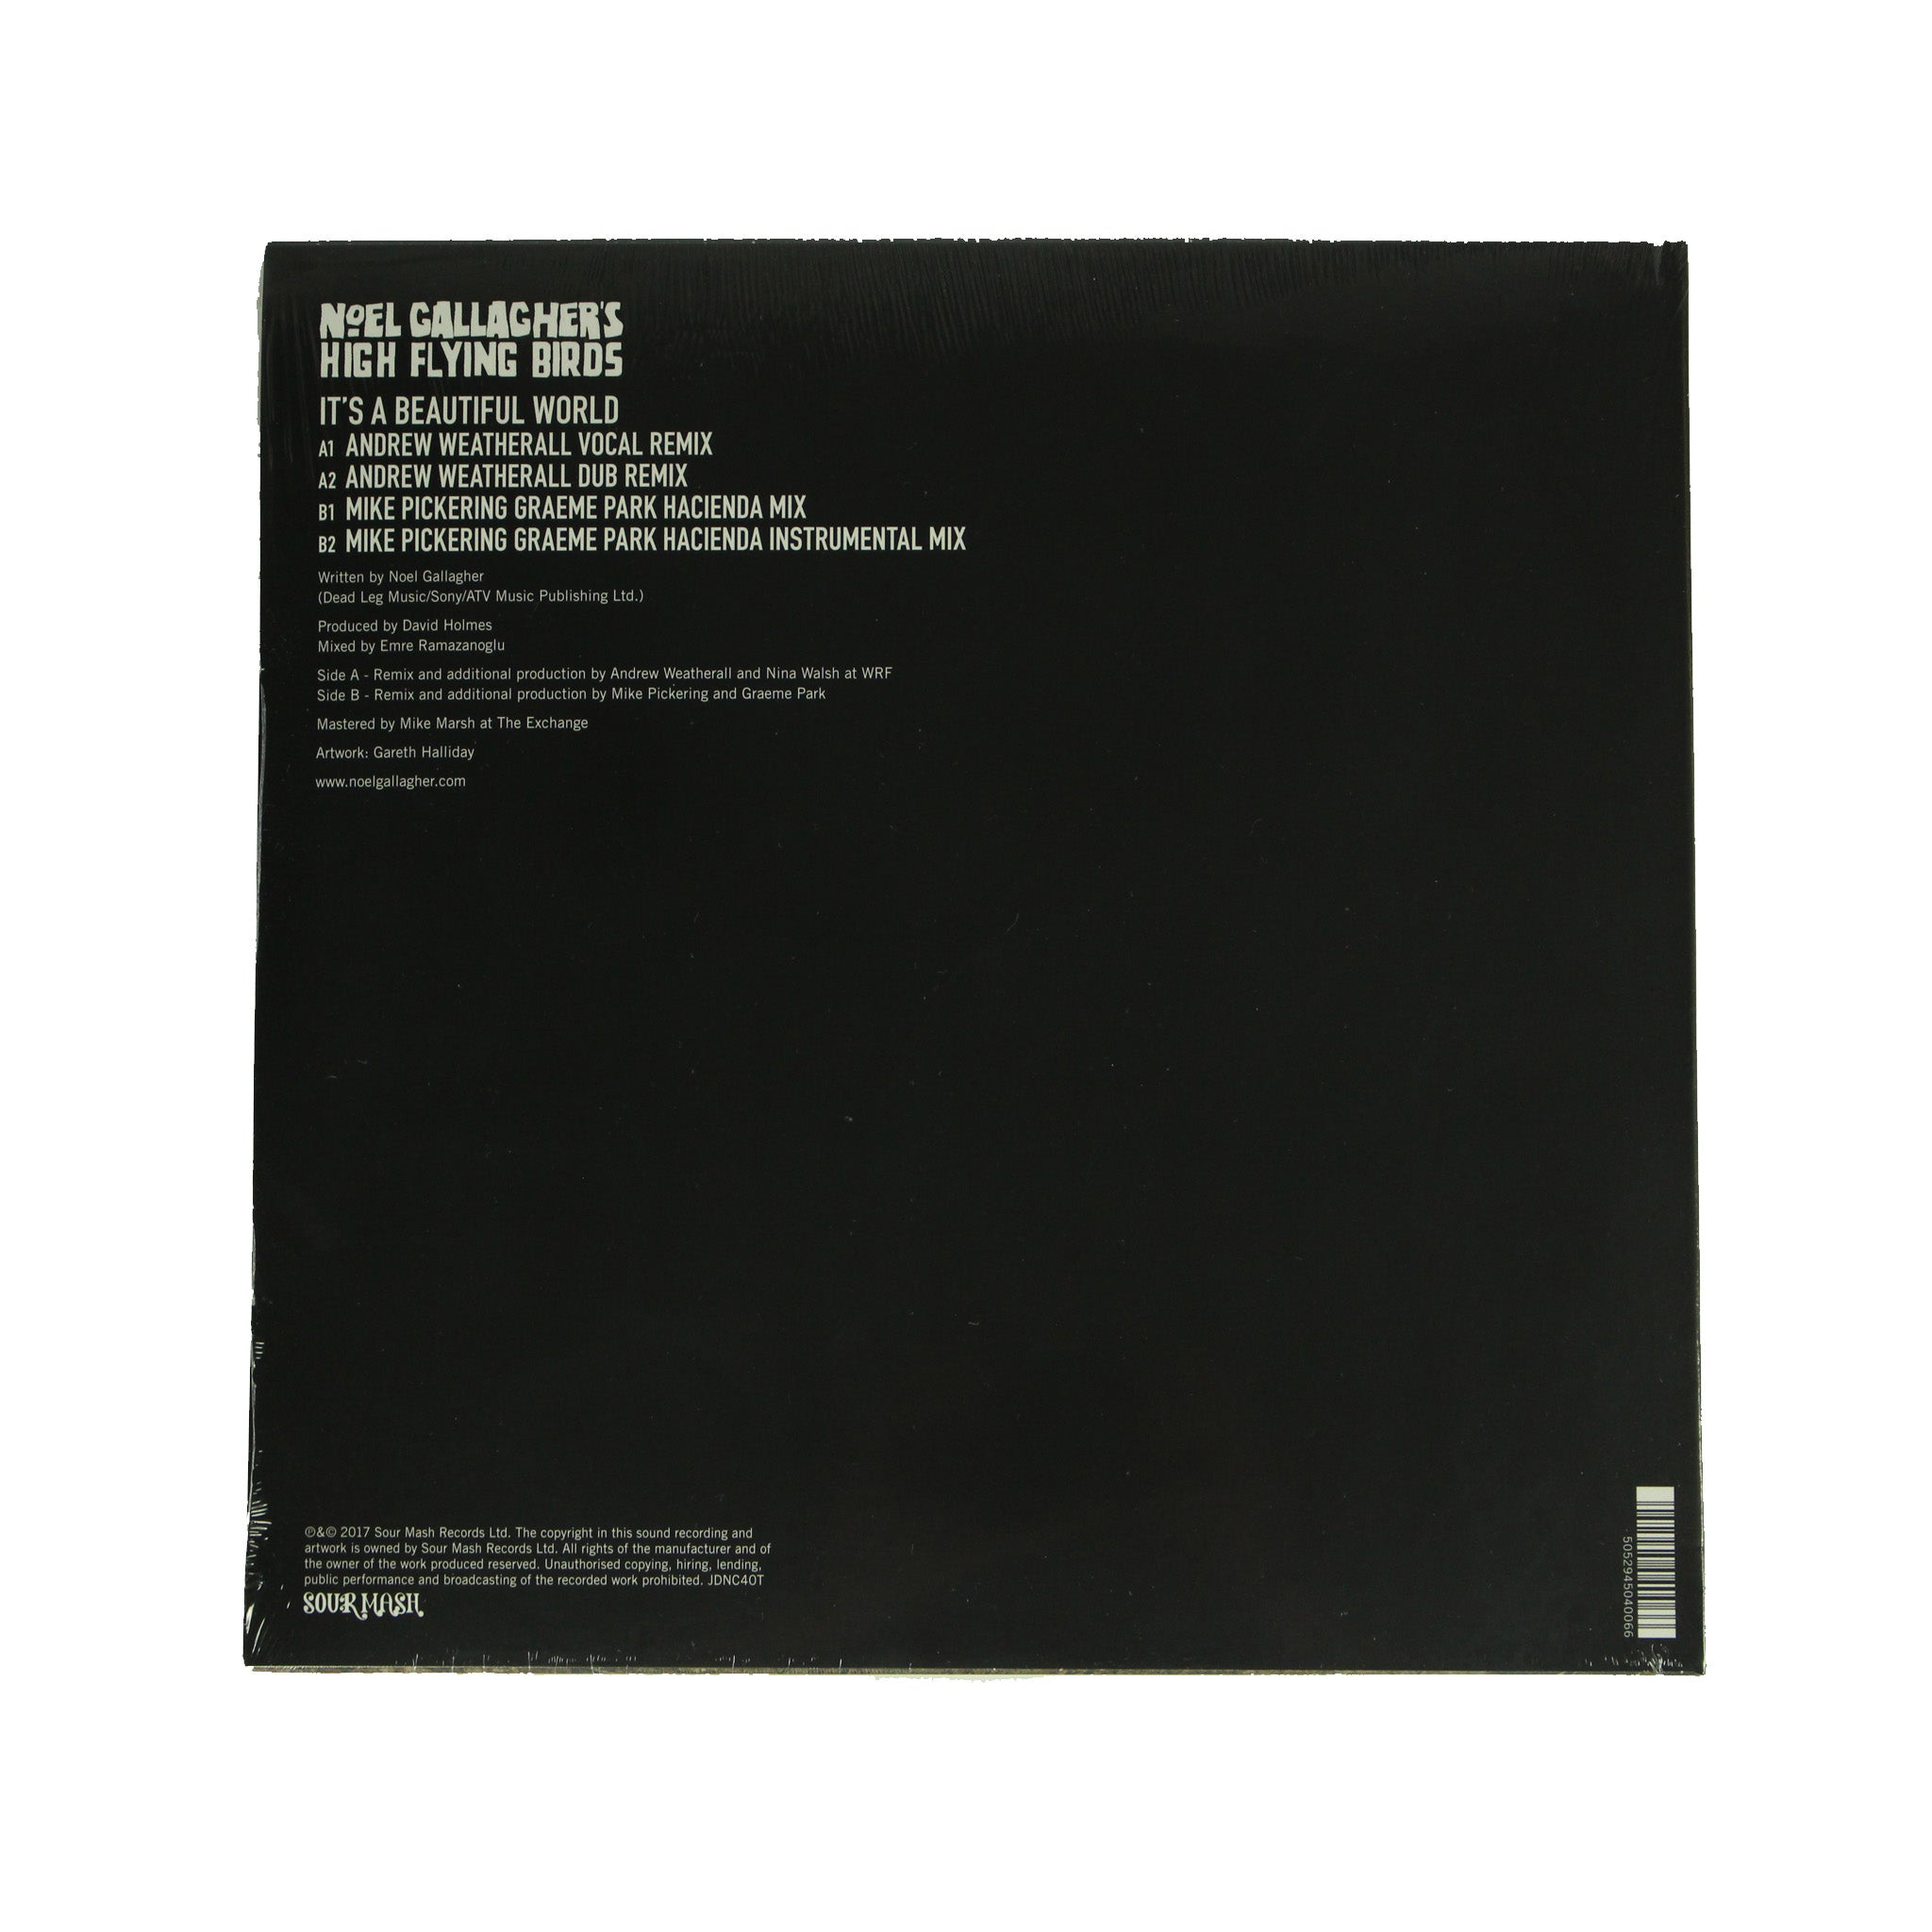 "Noel Gallagher's High Flying Birds ‎– Beautiful World Remixes 12"" Vinyl Record, Vinyl, X-Records"